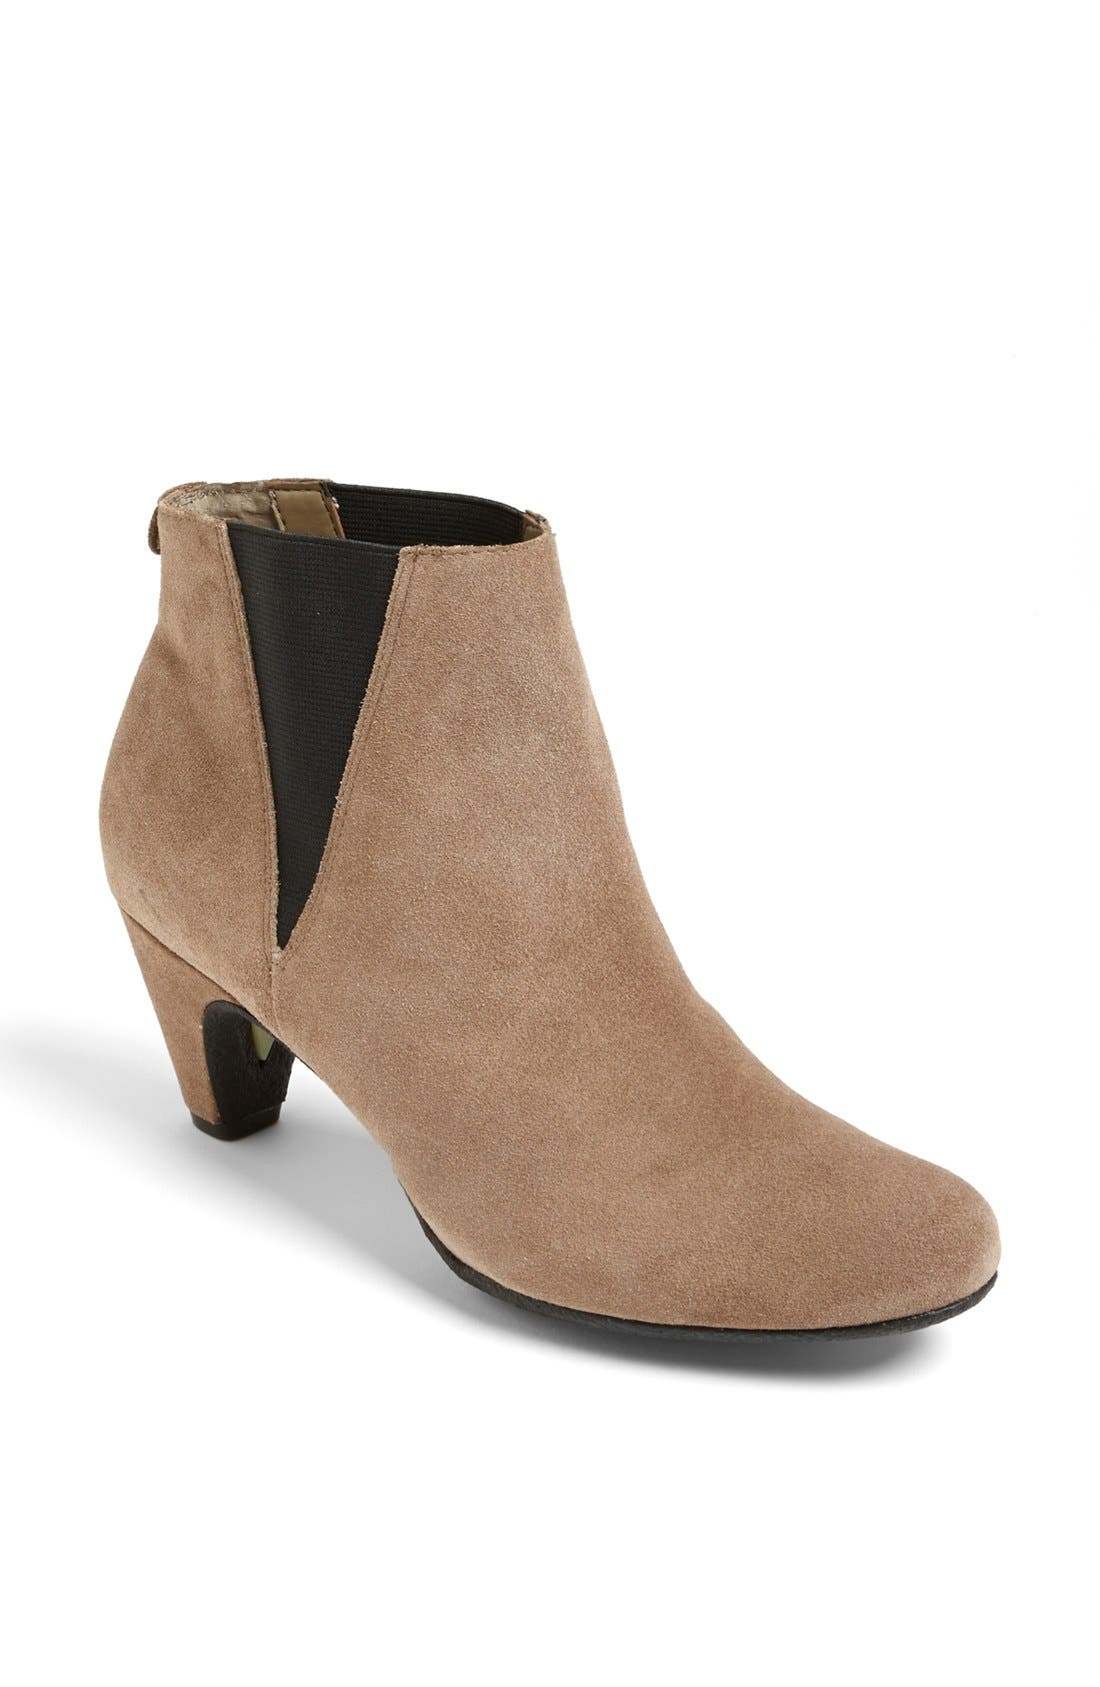 Alternate Image 1 Selected - Sam Edelman 'Morillo' Bootie